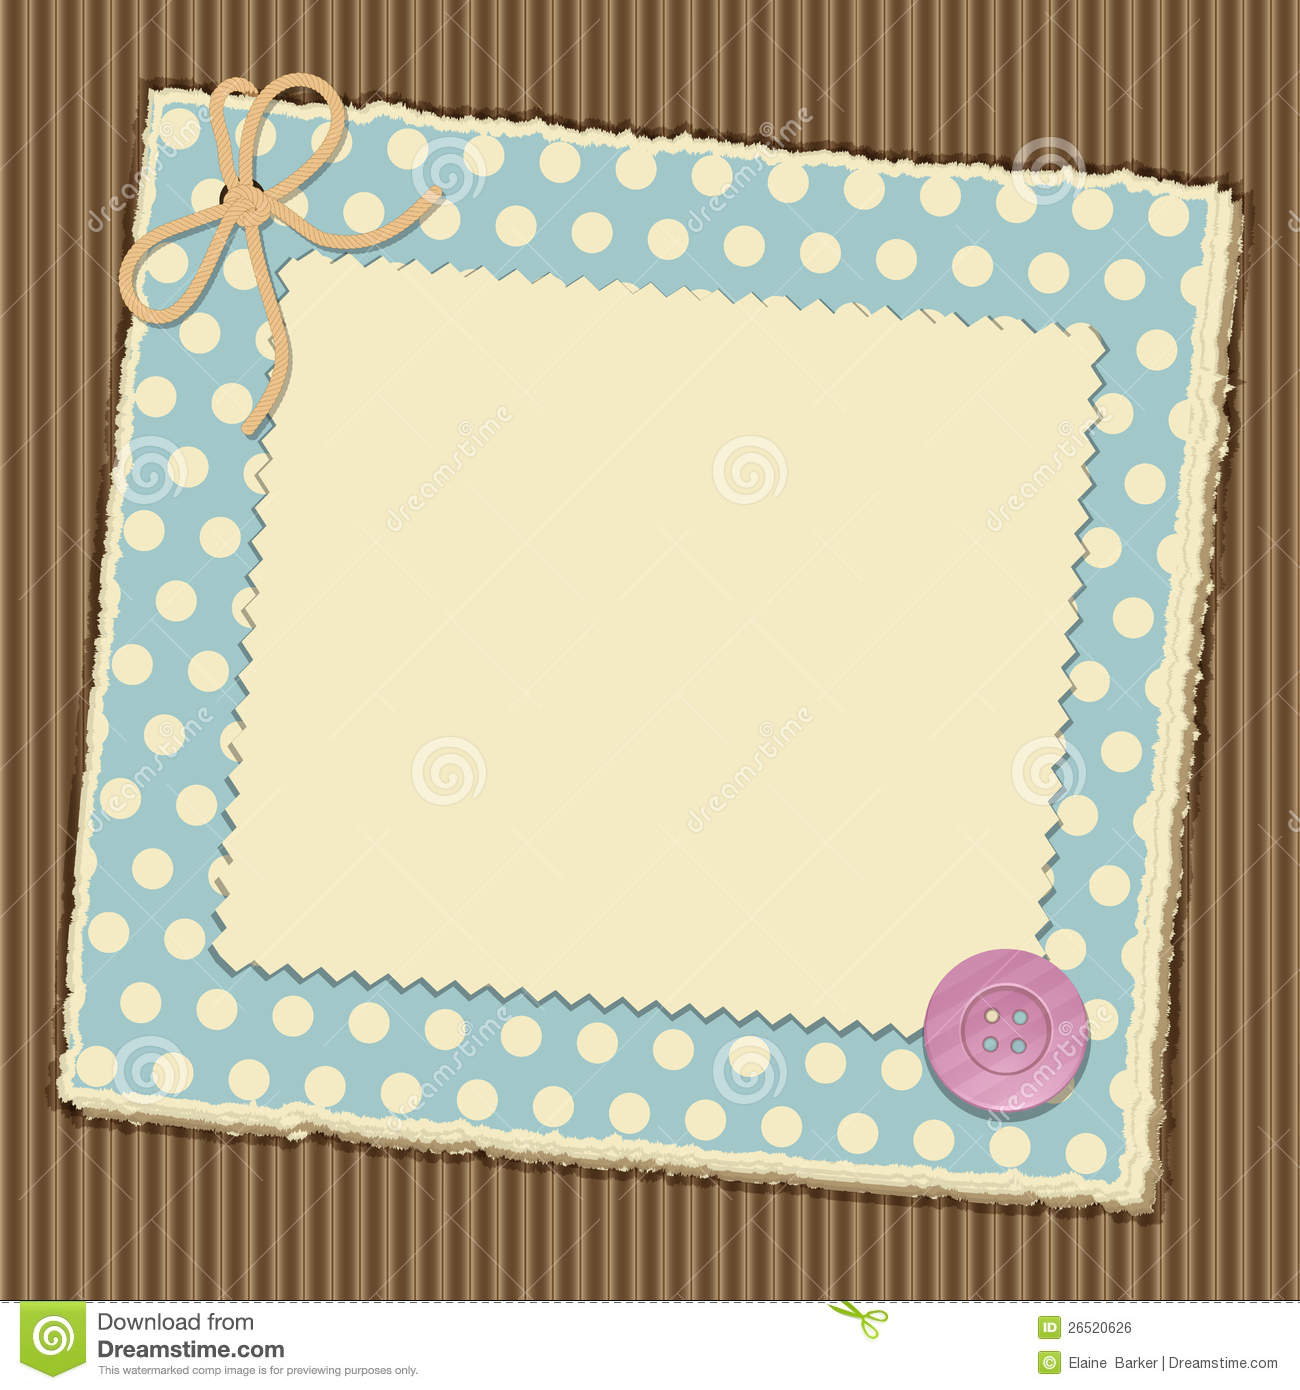 Scrapbooking Layout Royalty Free Stock Image Image 26520626